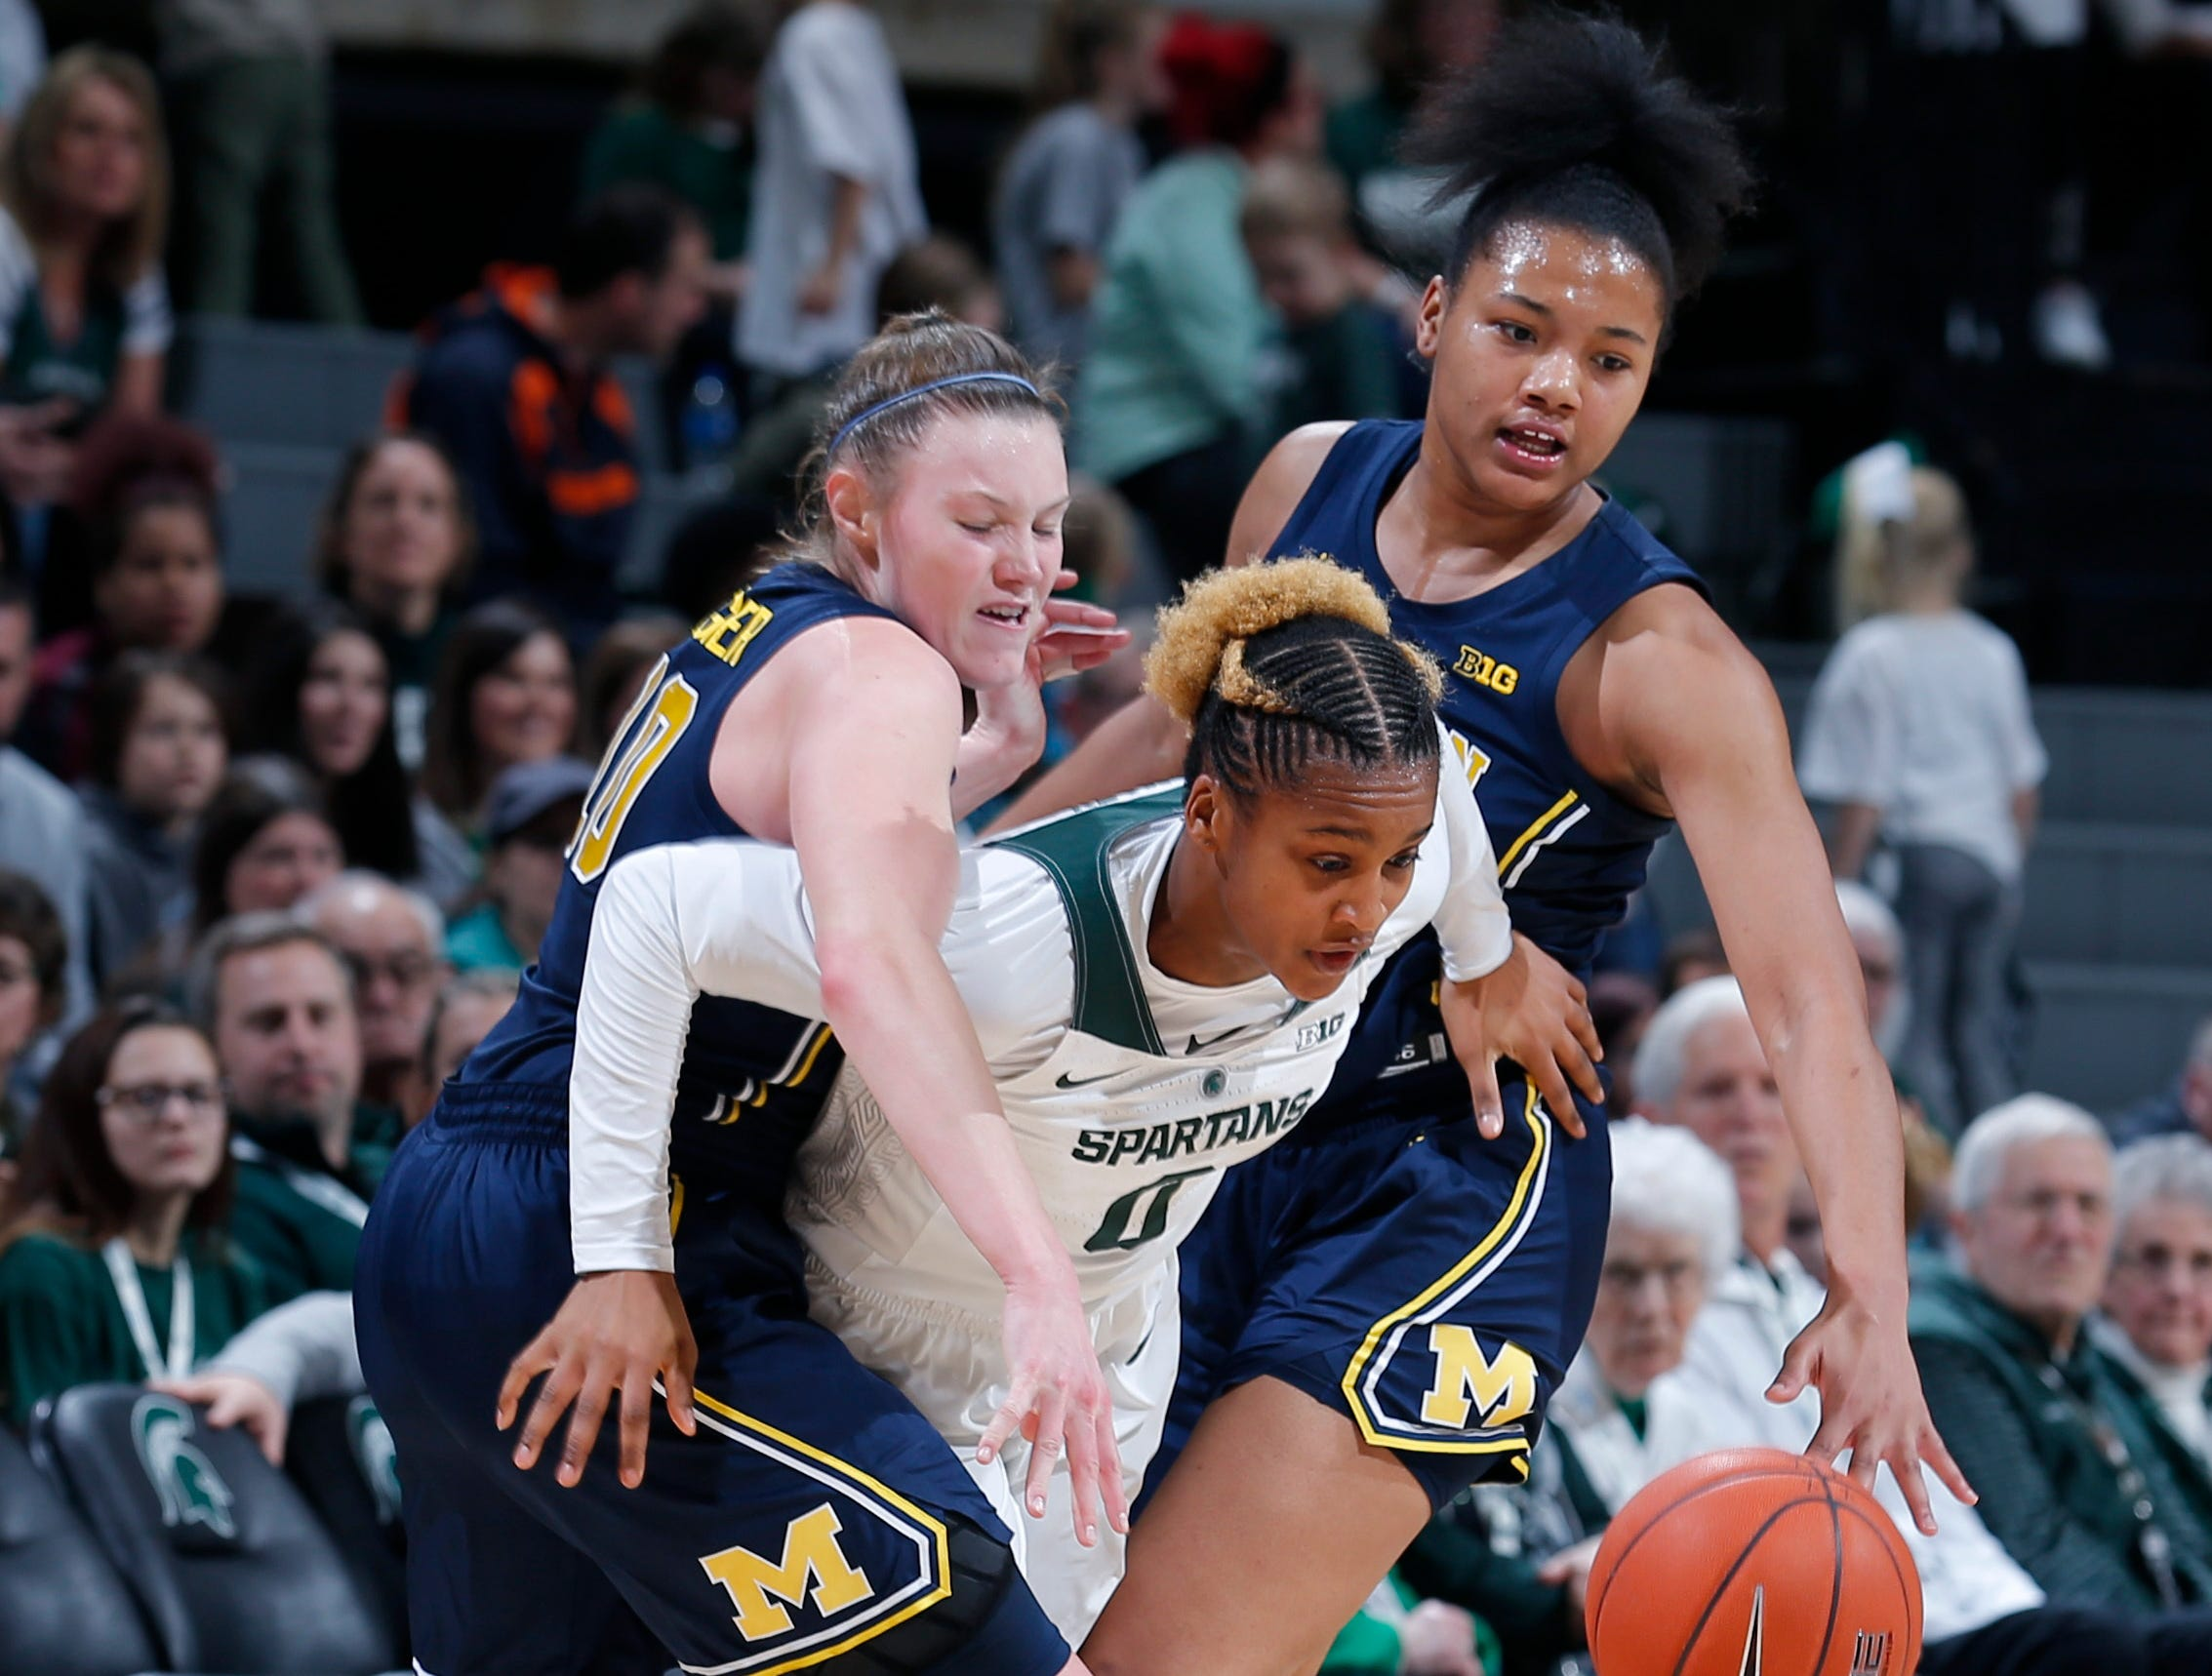 Michigan State's Shay Colley, center, escapes pressure by Michigan's Nicole Munger, left, and Naz Hillmon during the fourth quarter.